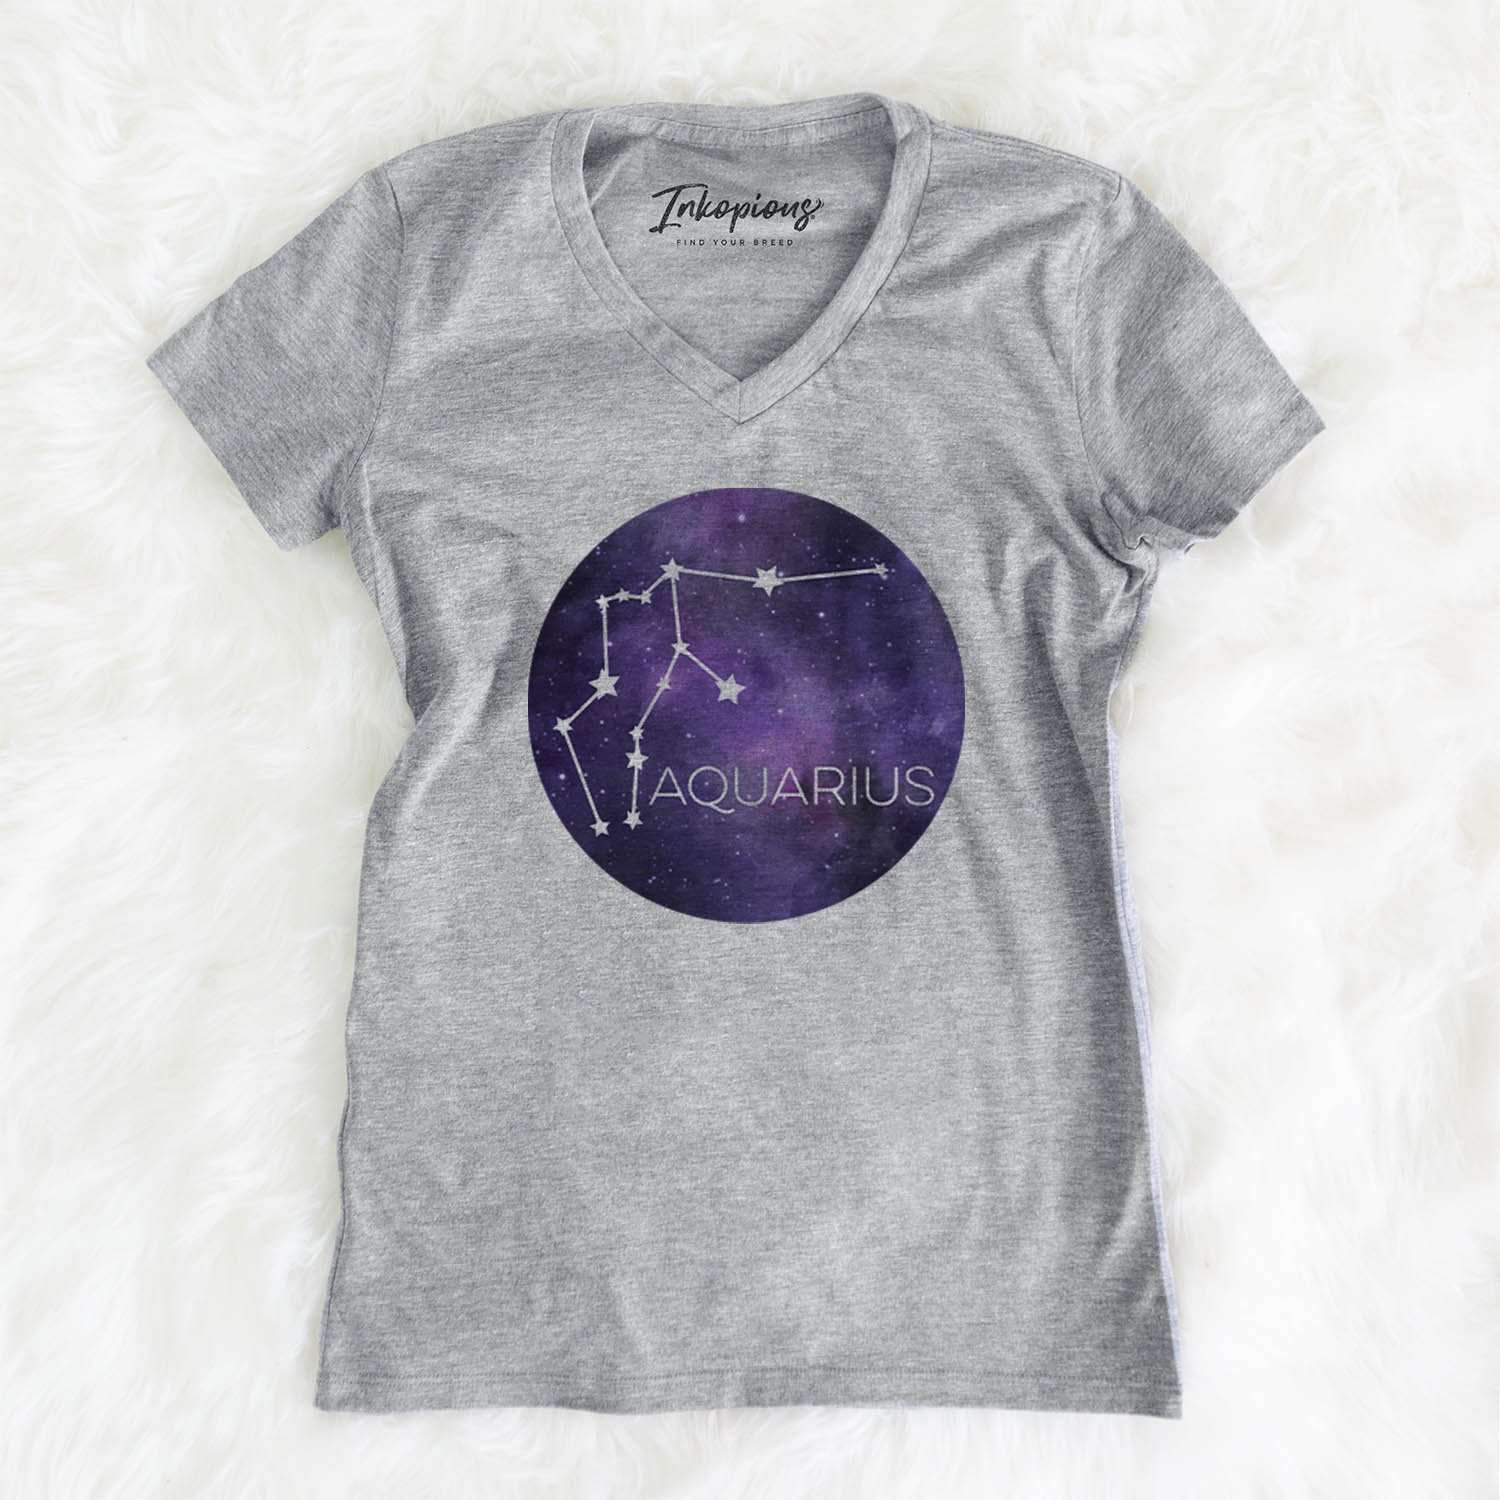 Aquarius Stars  - Women's Modern Fit V-neck Shirt